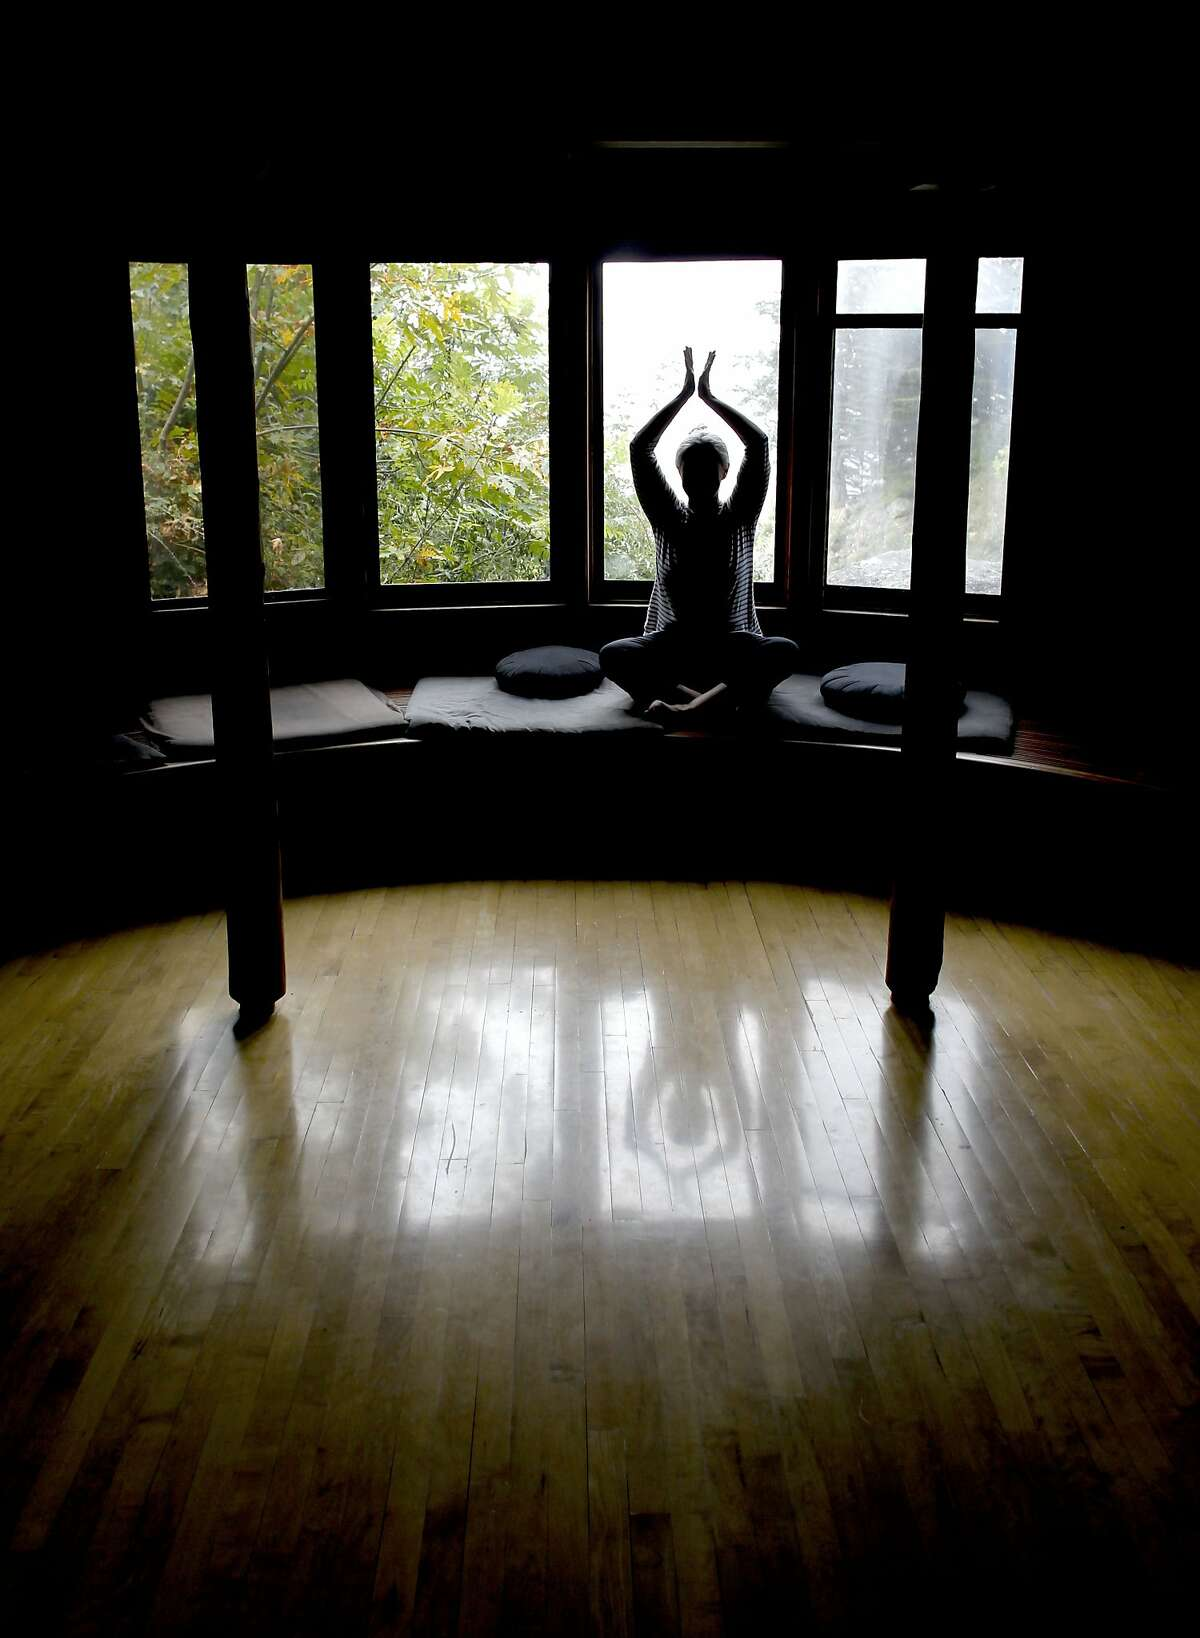 A guest vists the meditation center, at Esalen Institute in Big Sur, Calif., on Wednesday September 12, 2012. The Institute is celebrating it's 50th anniversary this year.